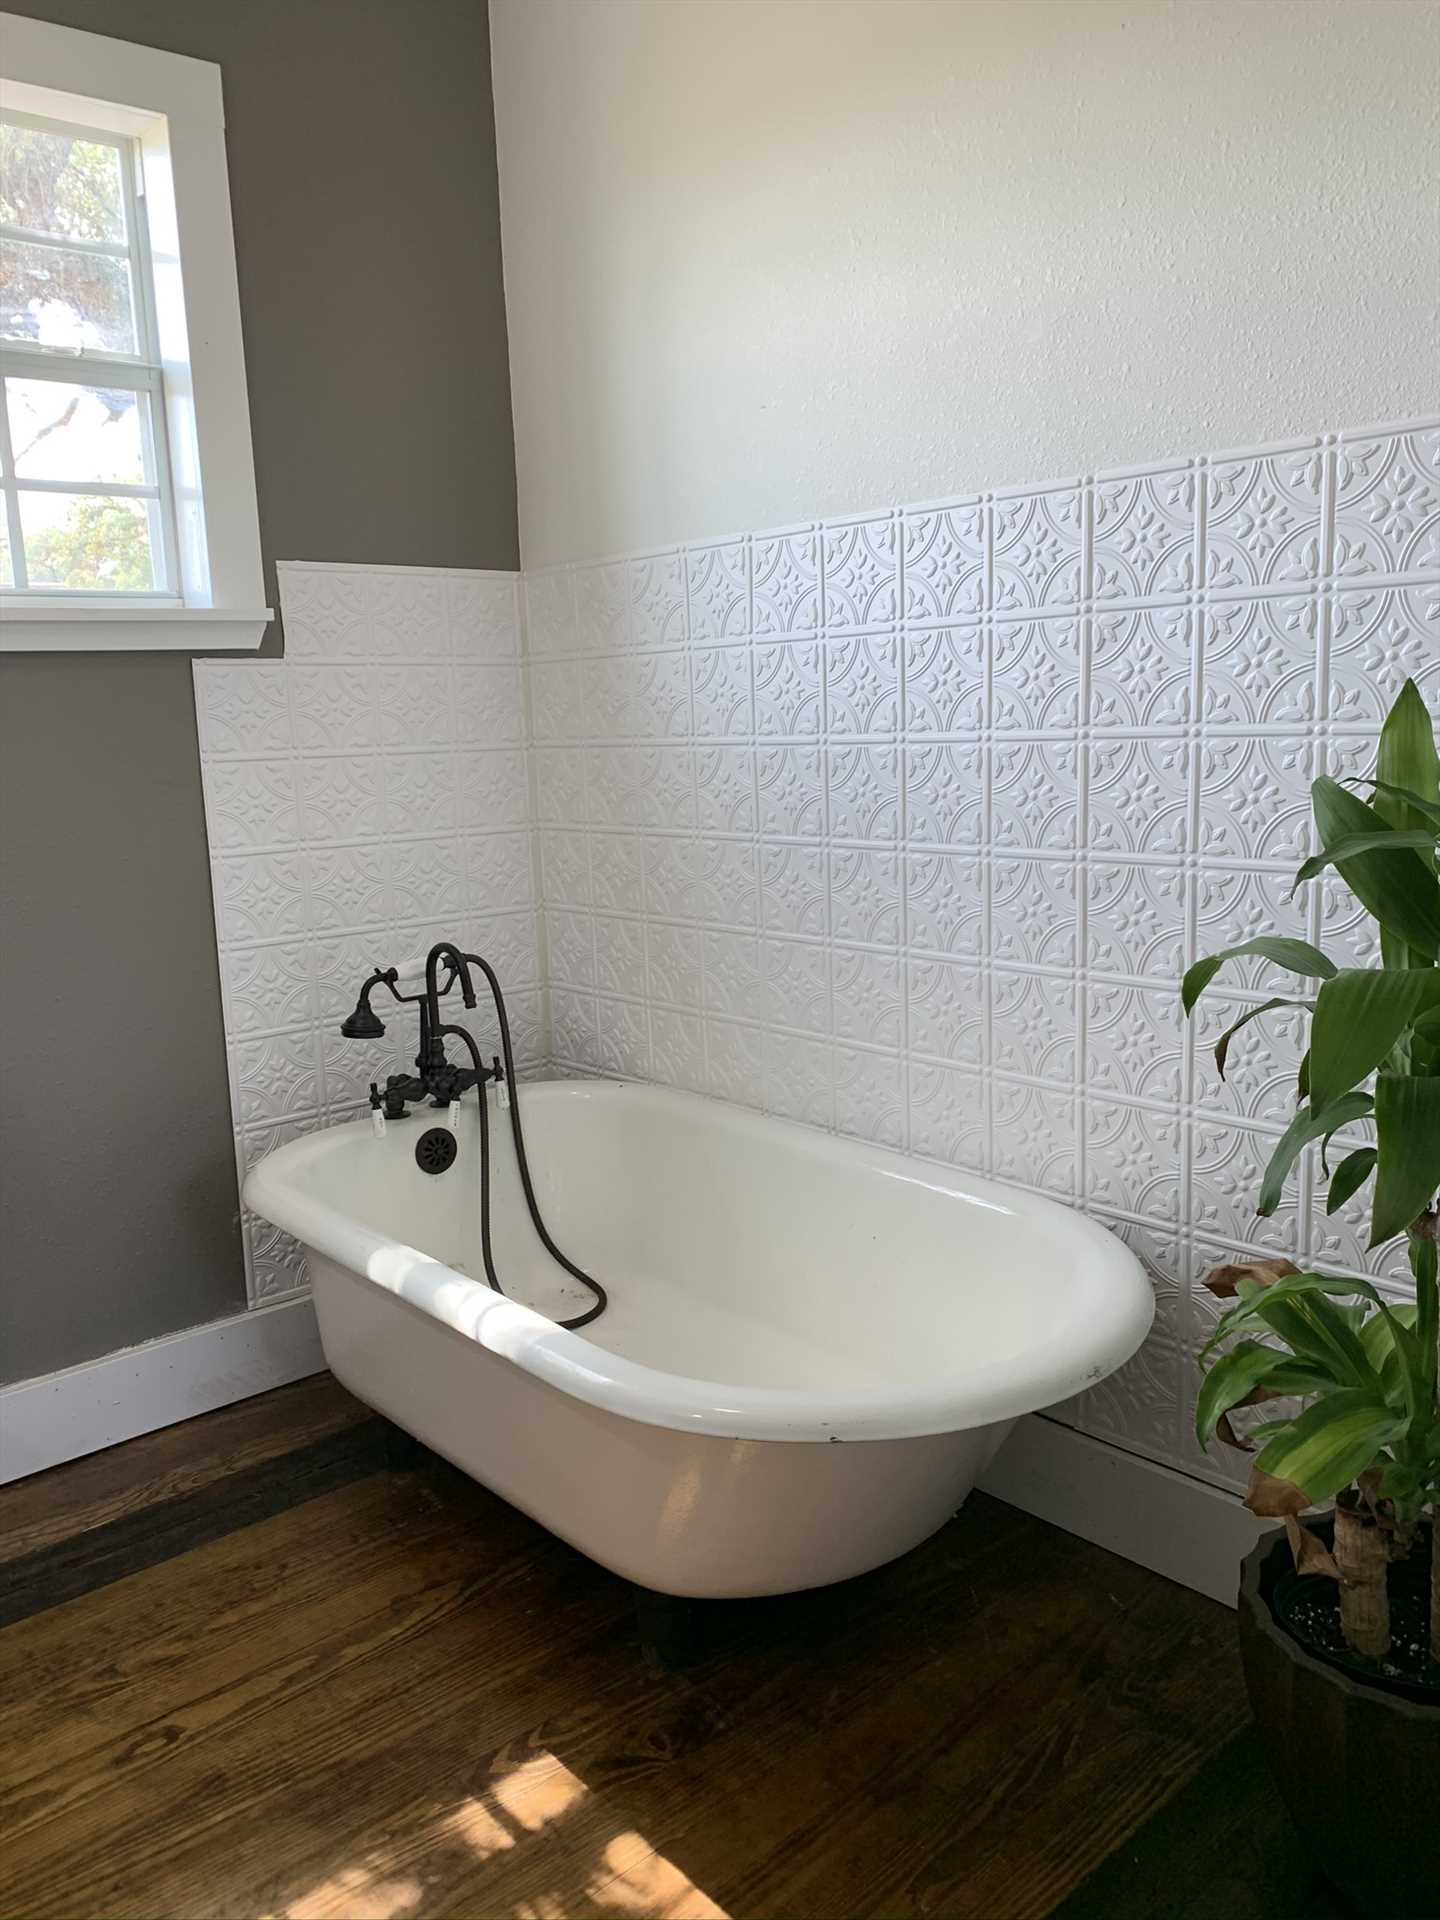 The second bathroom also features a second antique clawfoot tub, which also includes a handy shower attachment.